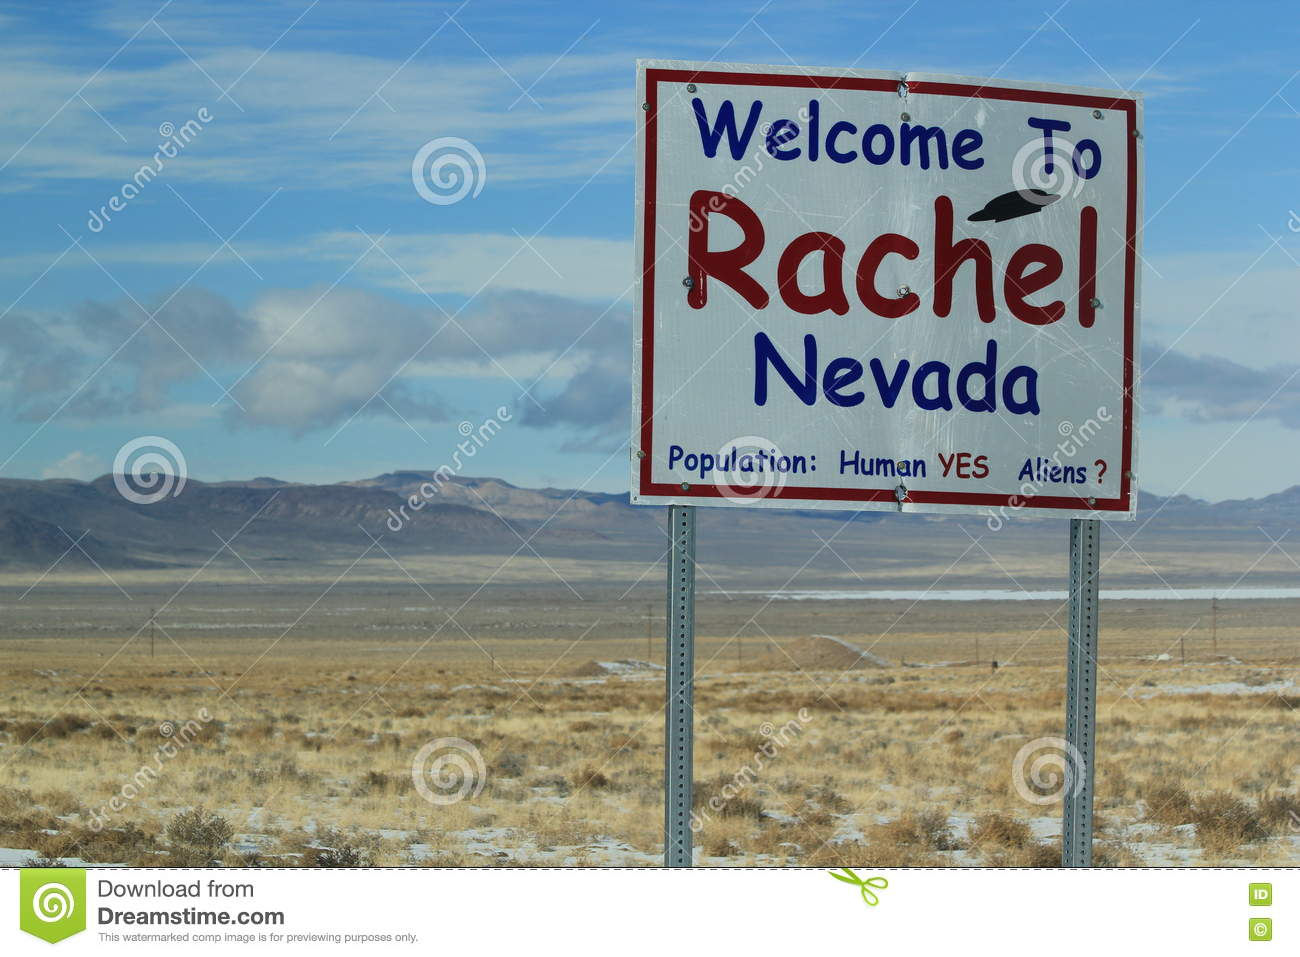 Welcome To Rachel Nevada Sign Stock Image - Image of welcome, snow